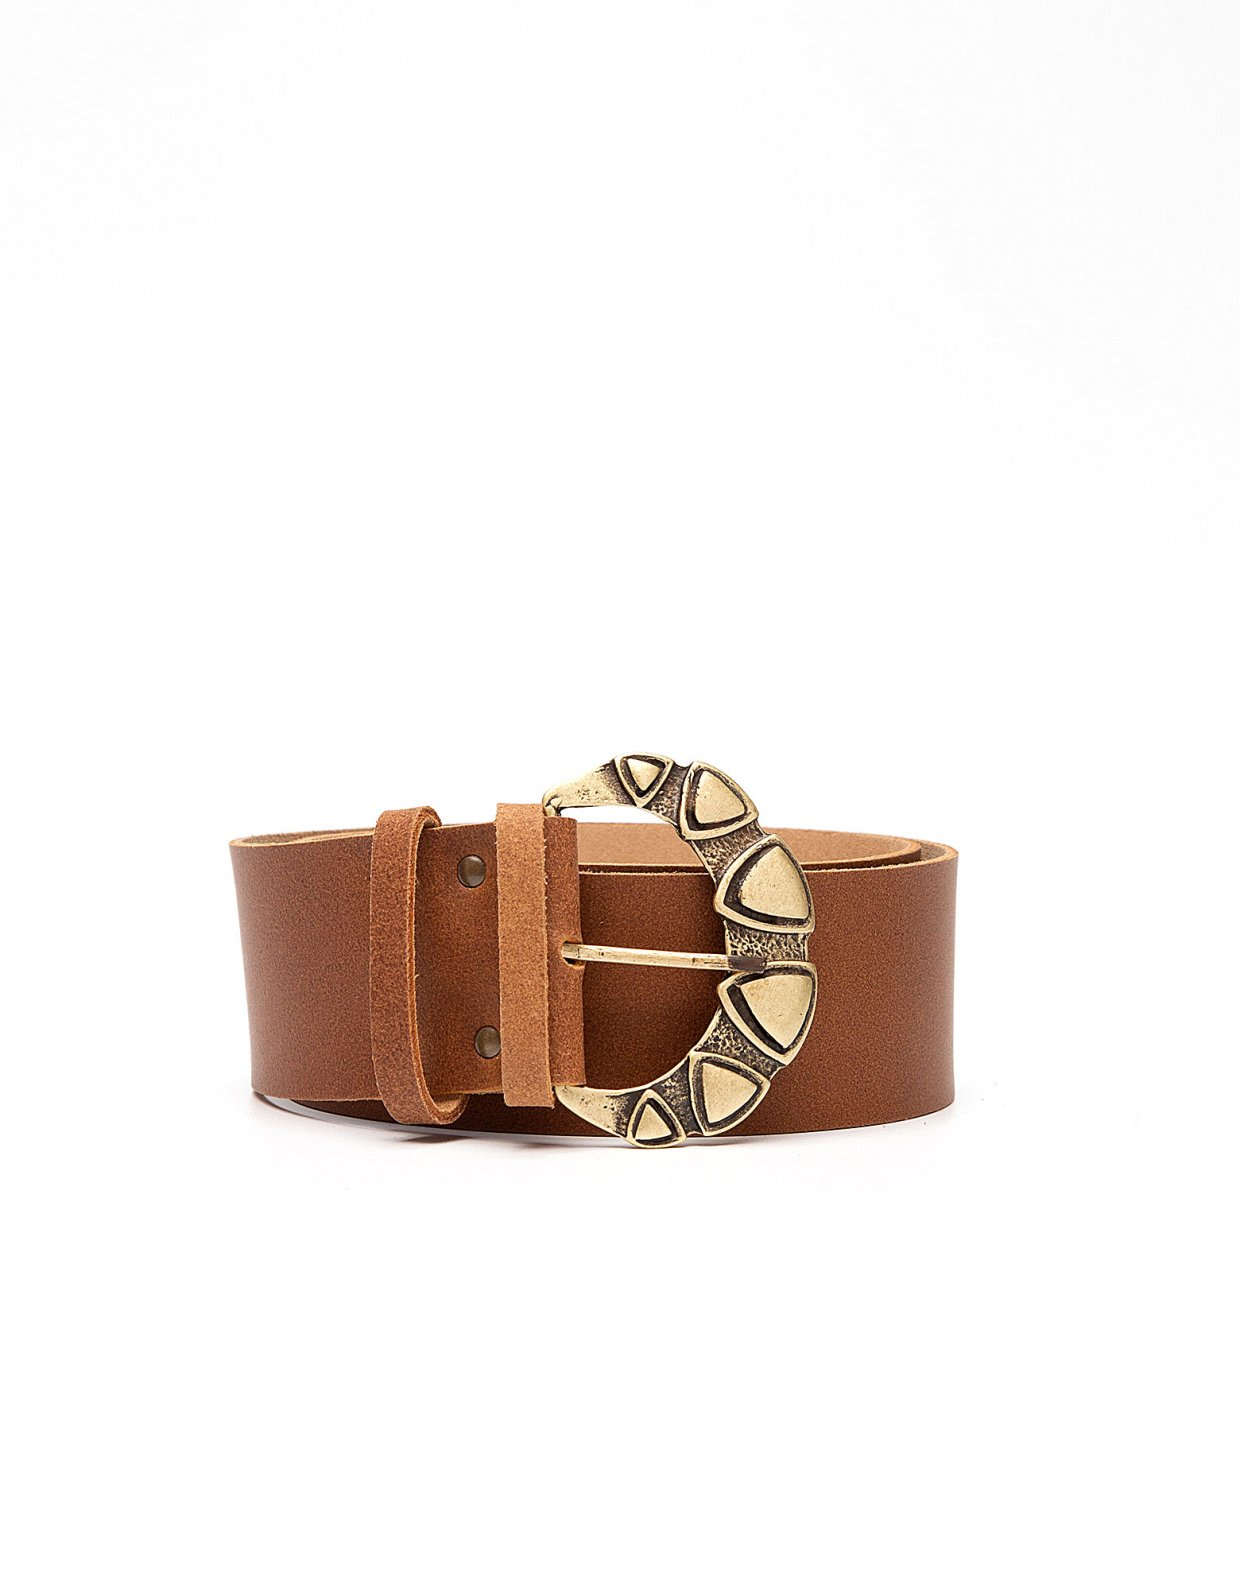 Peace & Chaos Triangles leather belt tanned